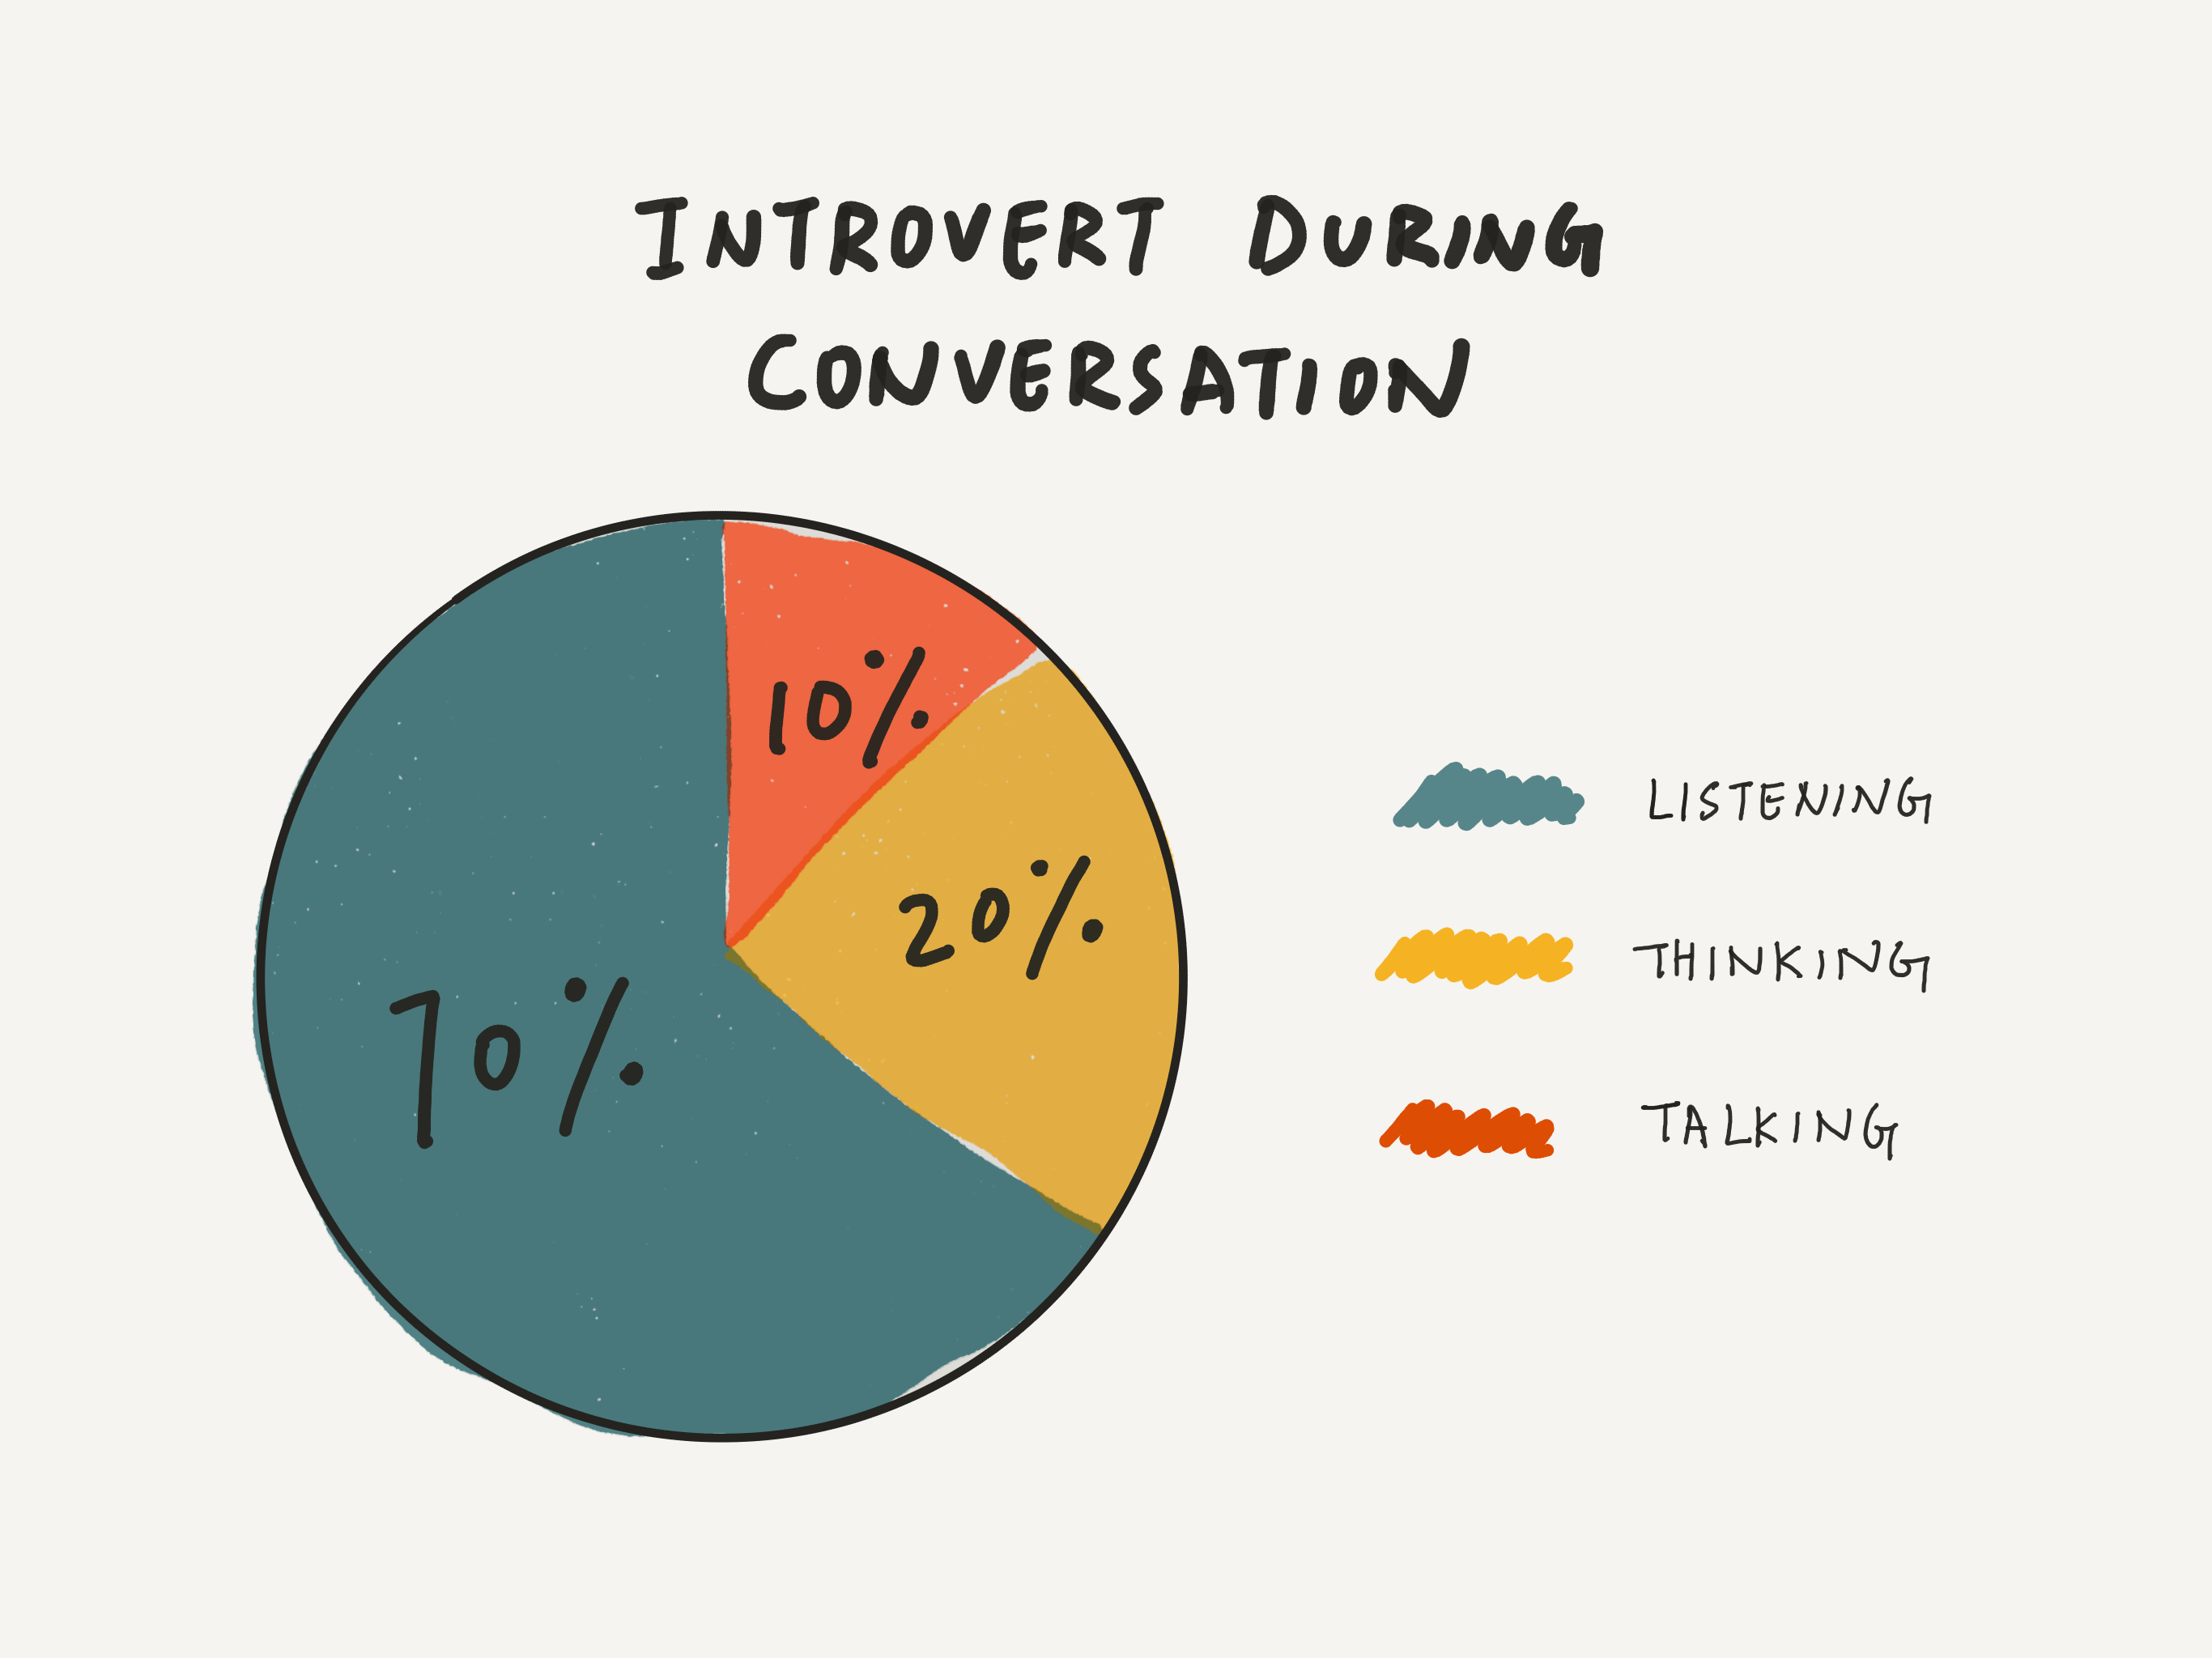 Introvert-traits